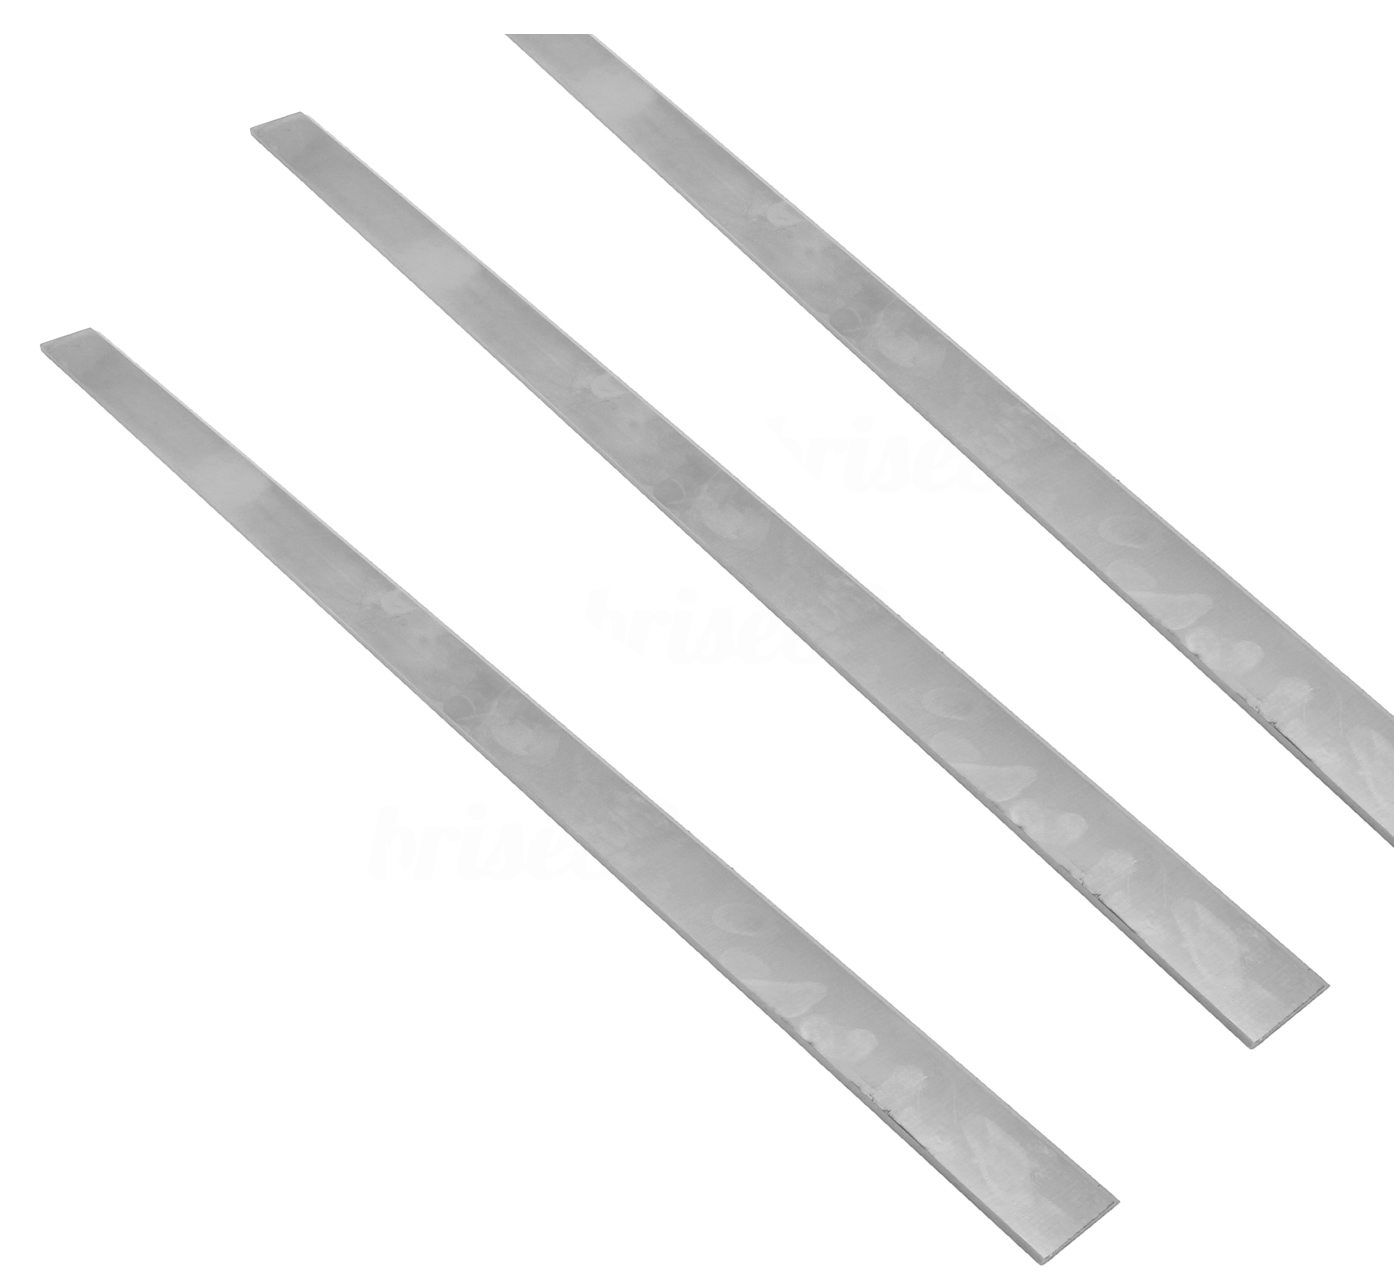 """20/"""" Grizzly G1033 G9740 G0454 H7269 Planer Blades Knives  inch HSS Set of 4"""